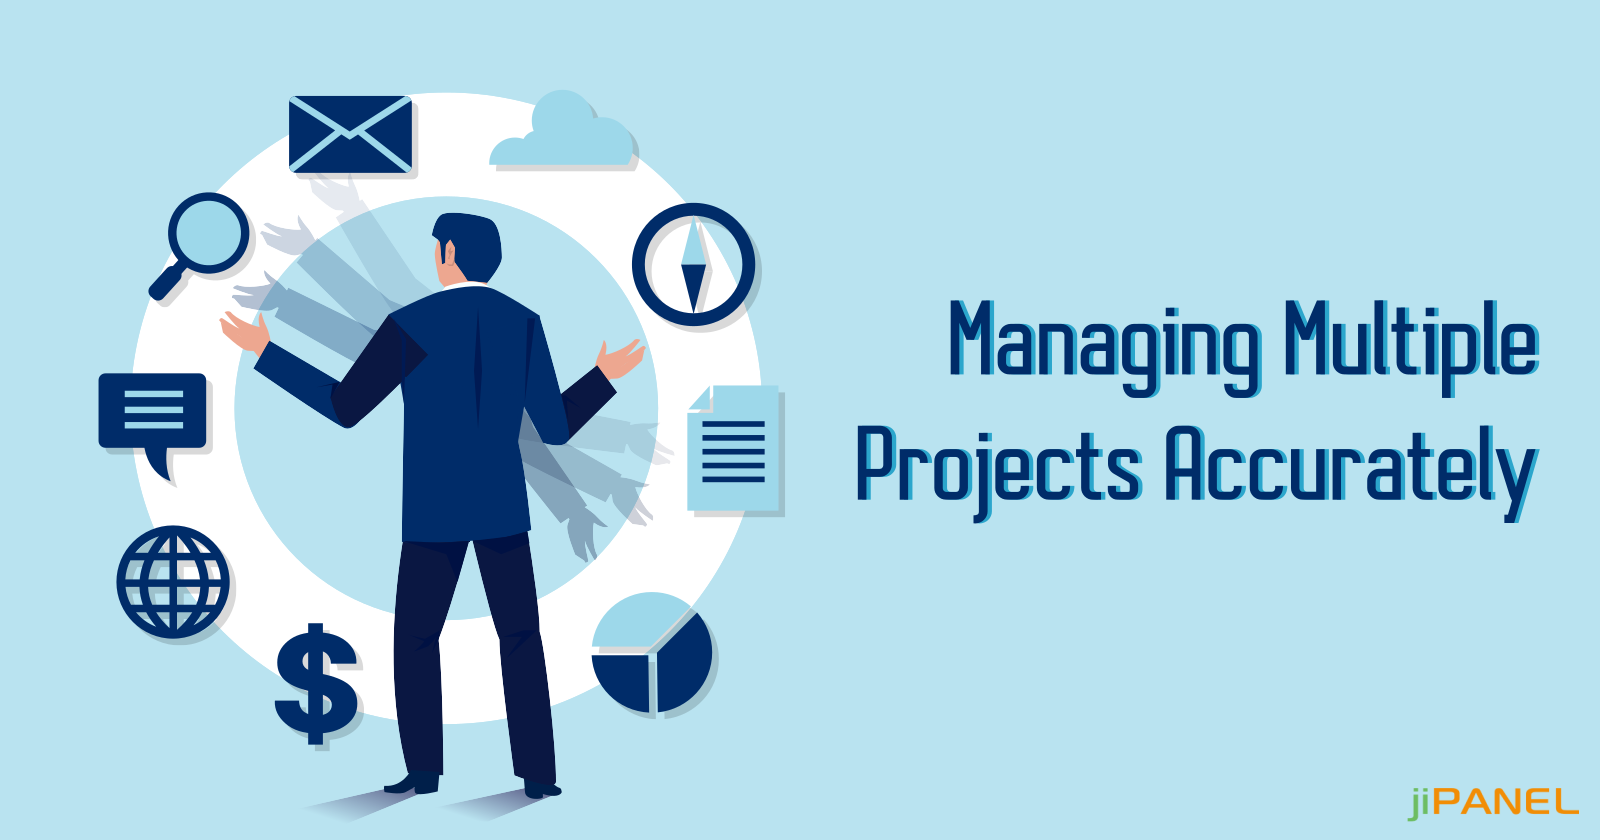 How to Manage Multiple Projects Accurately